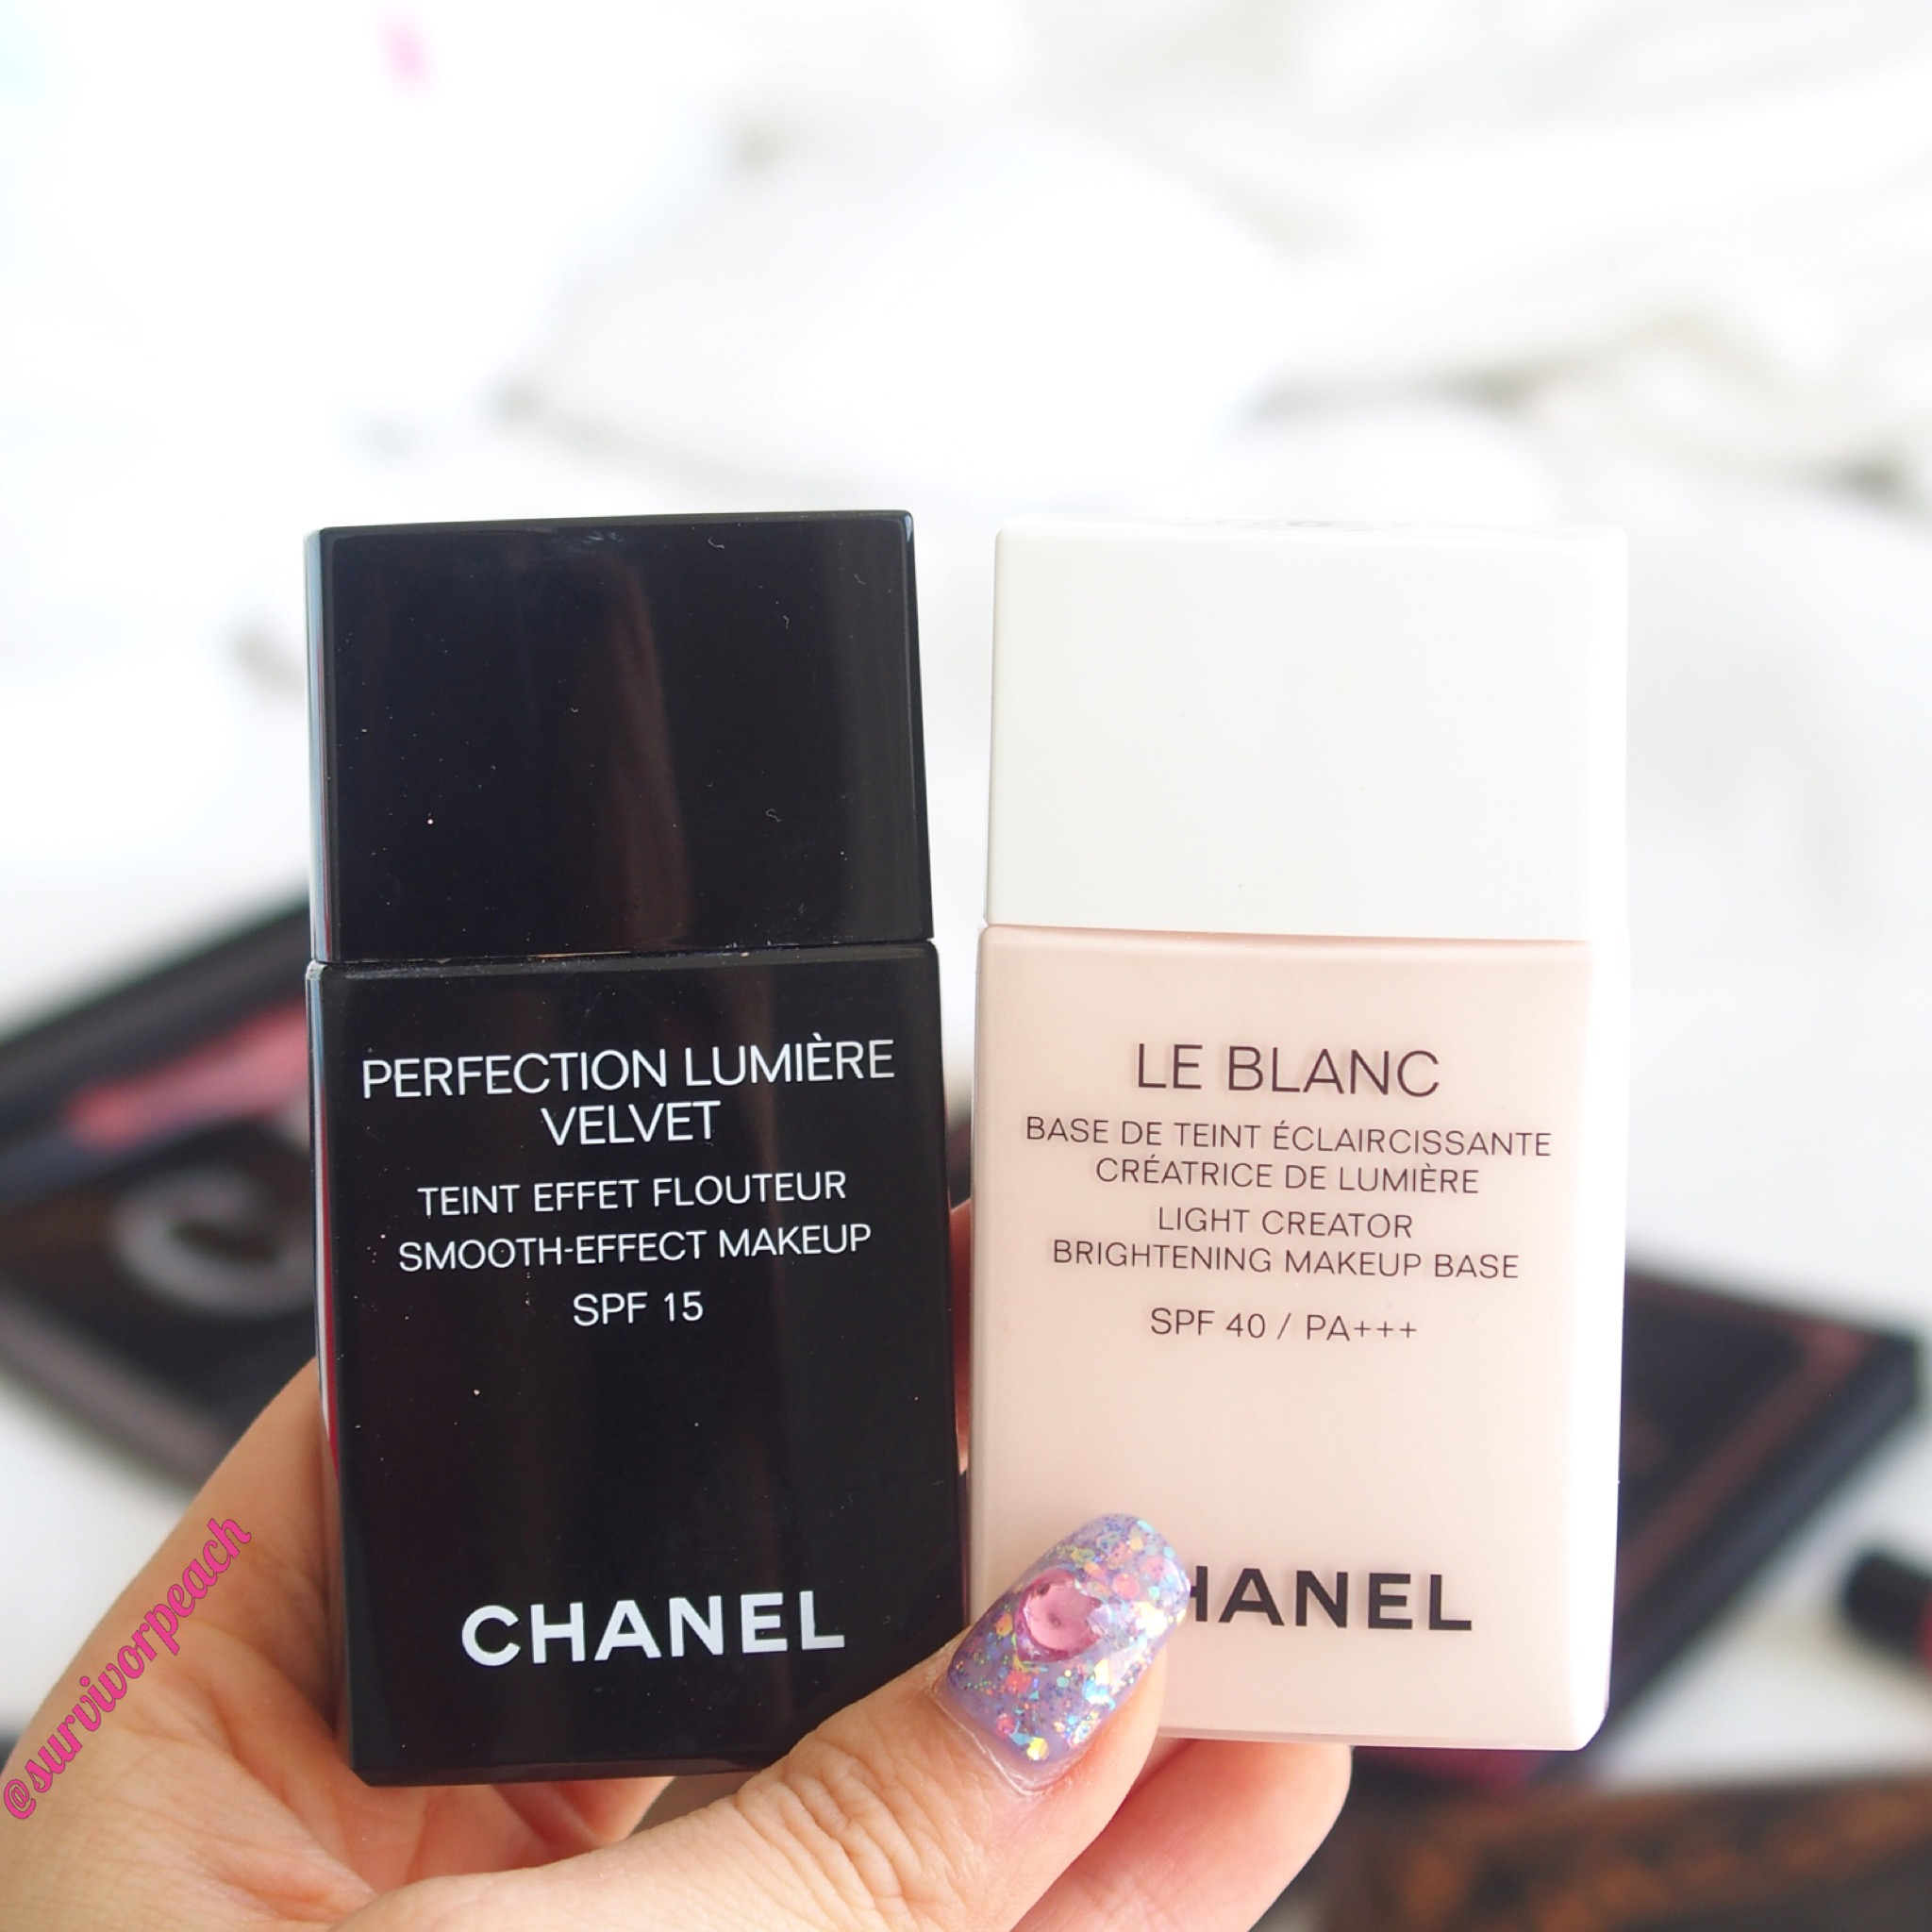 Chanel Perfection Lumeire Velvet foundation and Le Blanc base